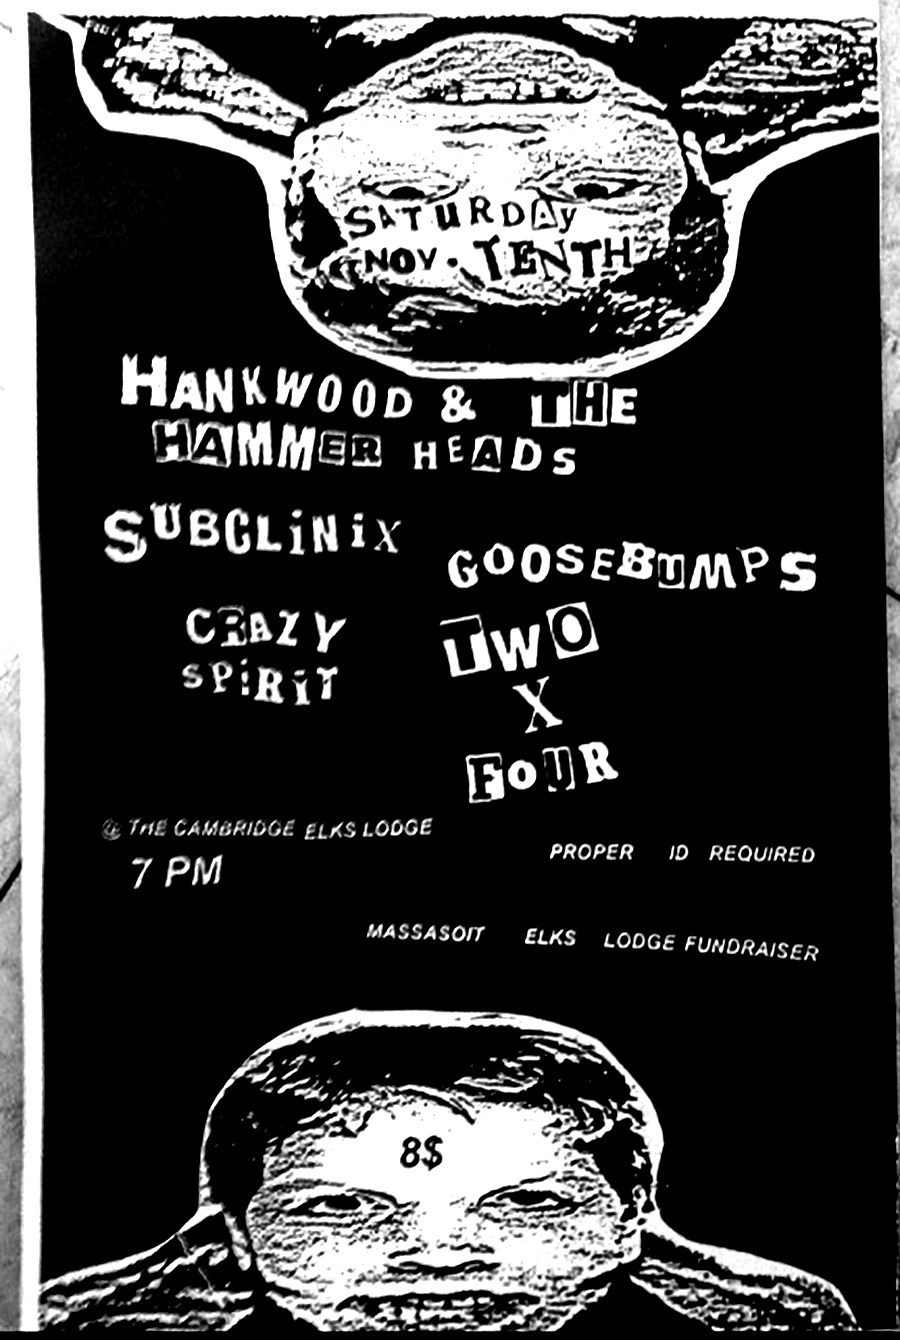 Poster for Hank Wood & The Hammerheads, Goosebumps, & Crazy Spirit (NYC) in Boston, MA. 2012.